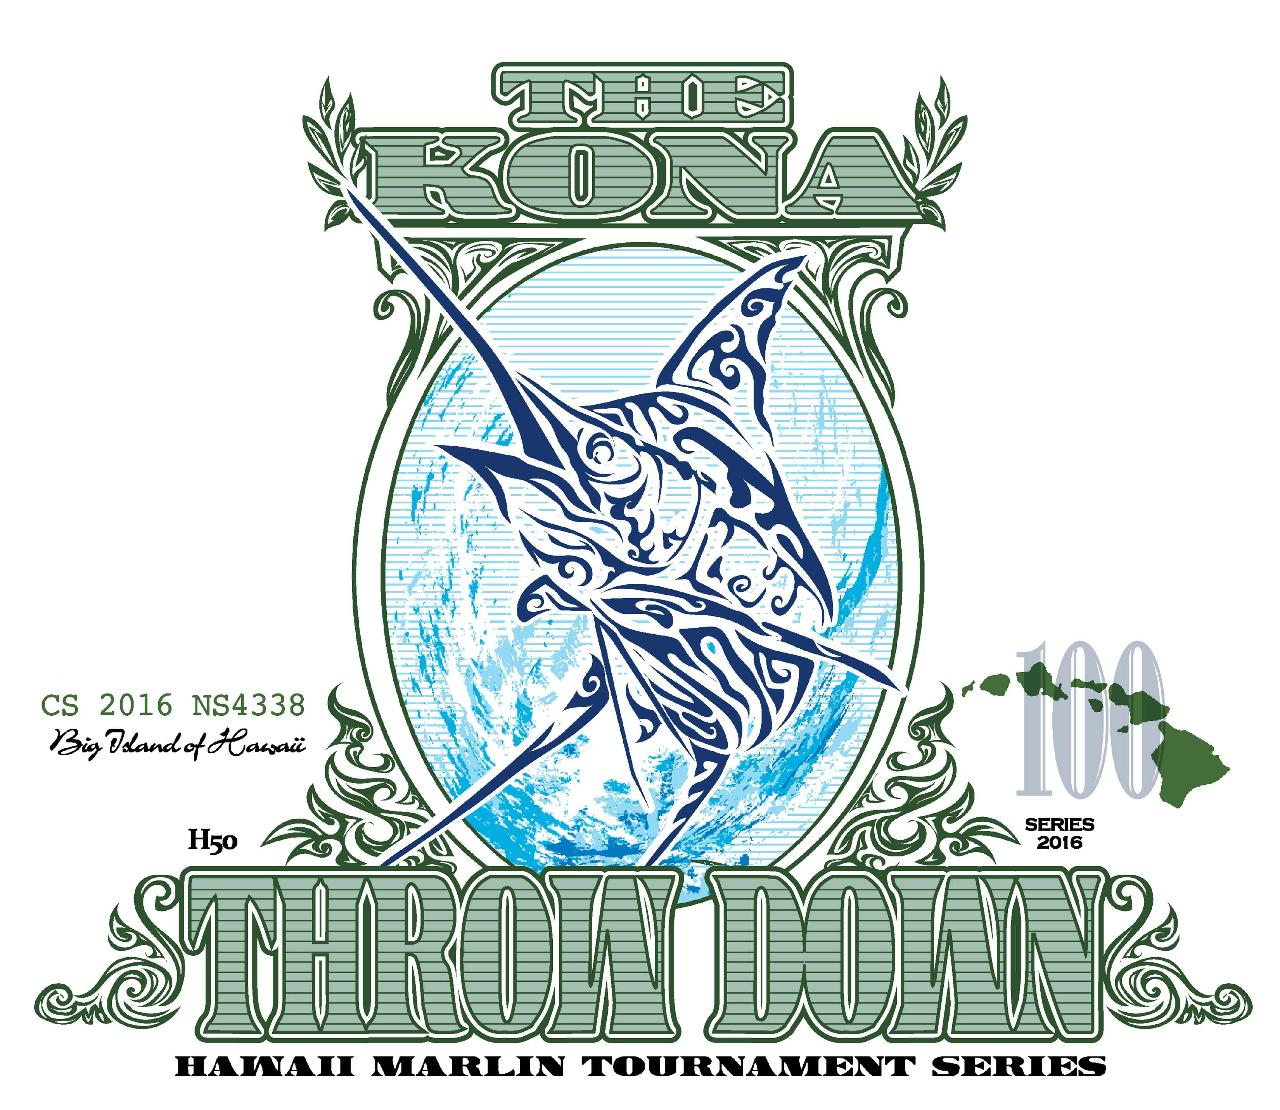 Kona Throw Down - July 2nd - 5th 2017 (Credit Card Entry)